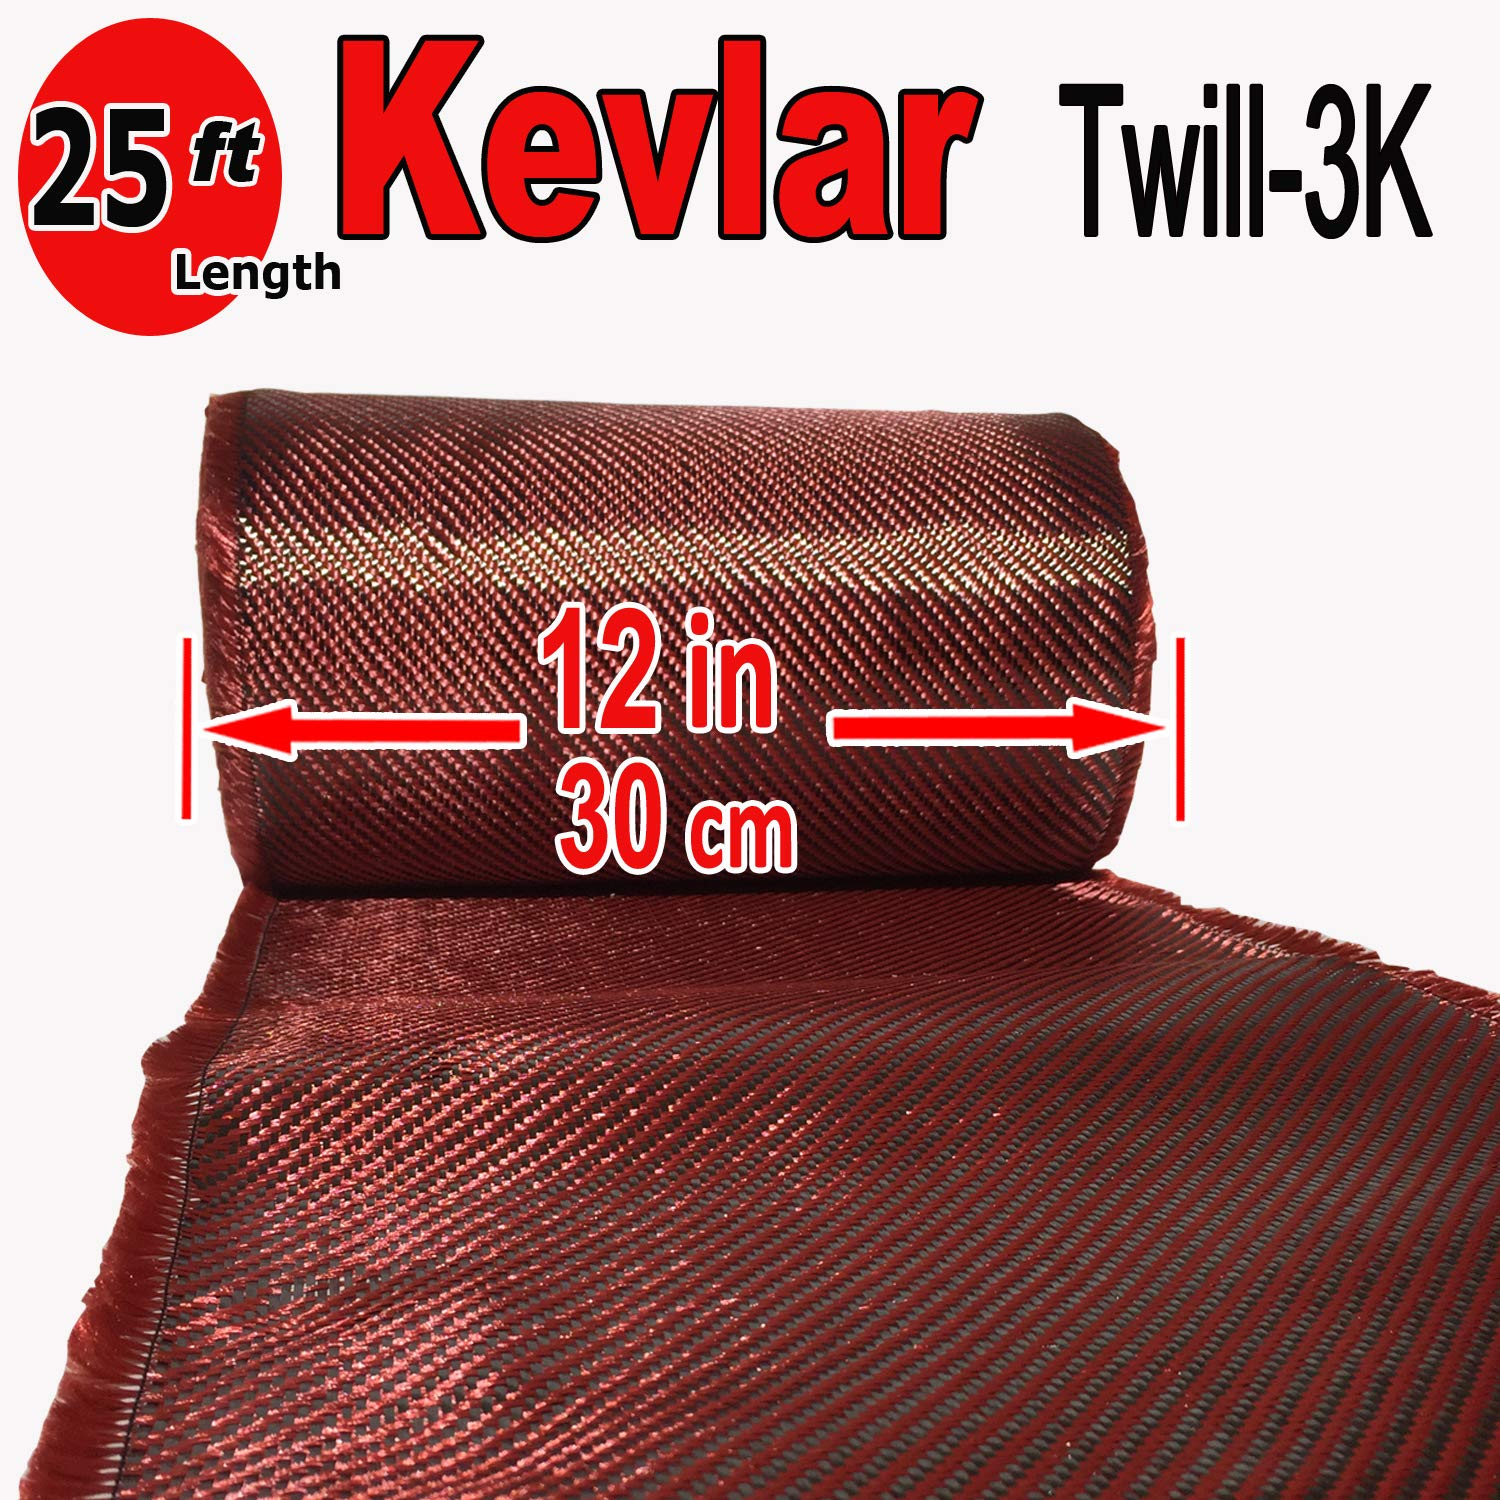 12'' x 25 FT Red - Kevlar FABRIC-2x2 Twill WEAVE-3K/220g by Unknown